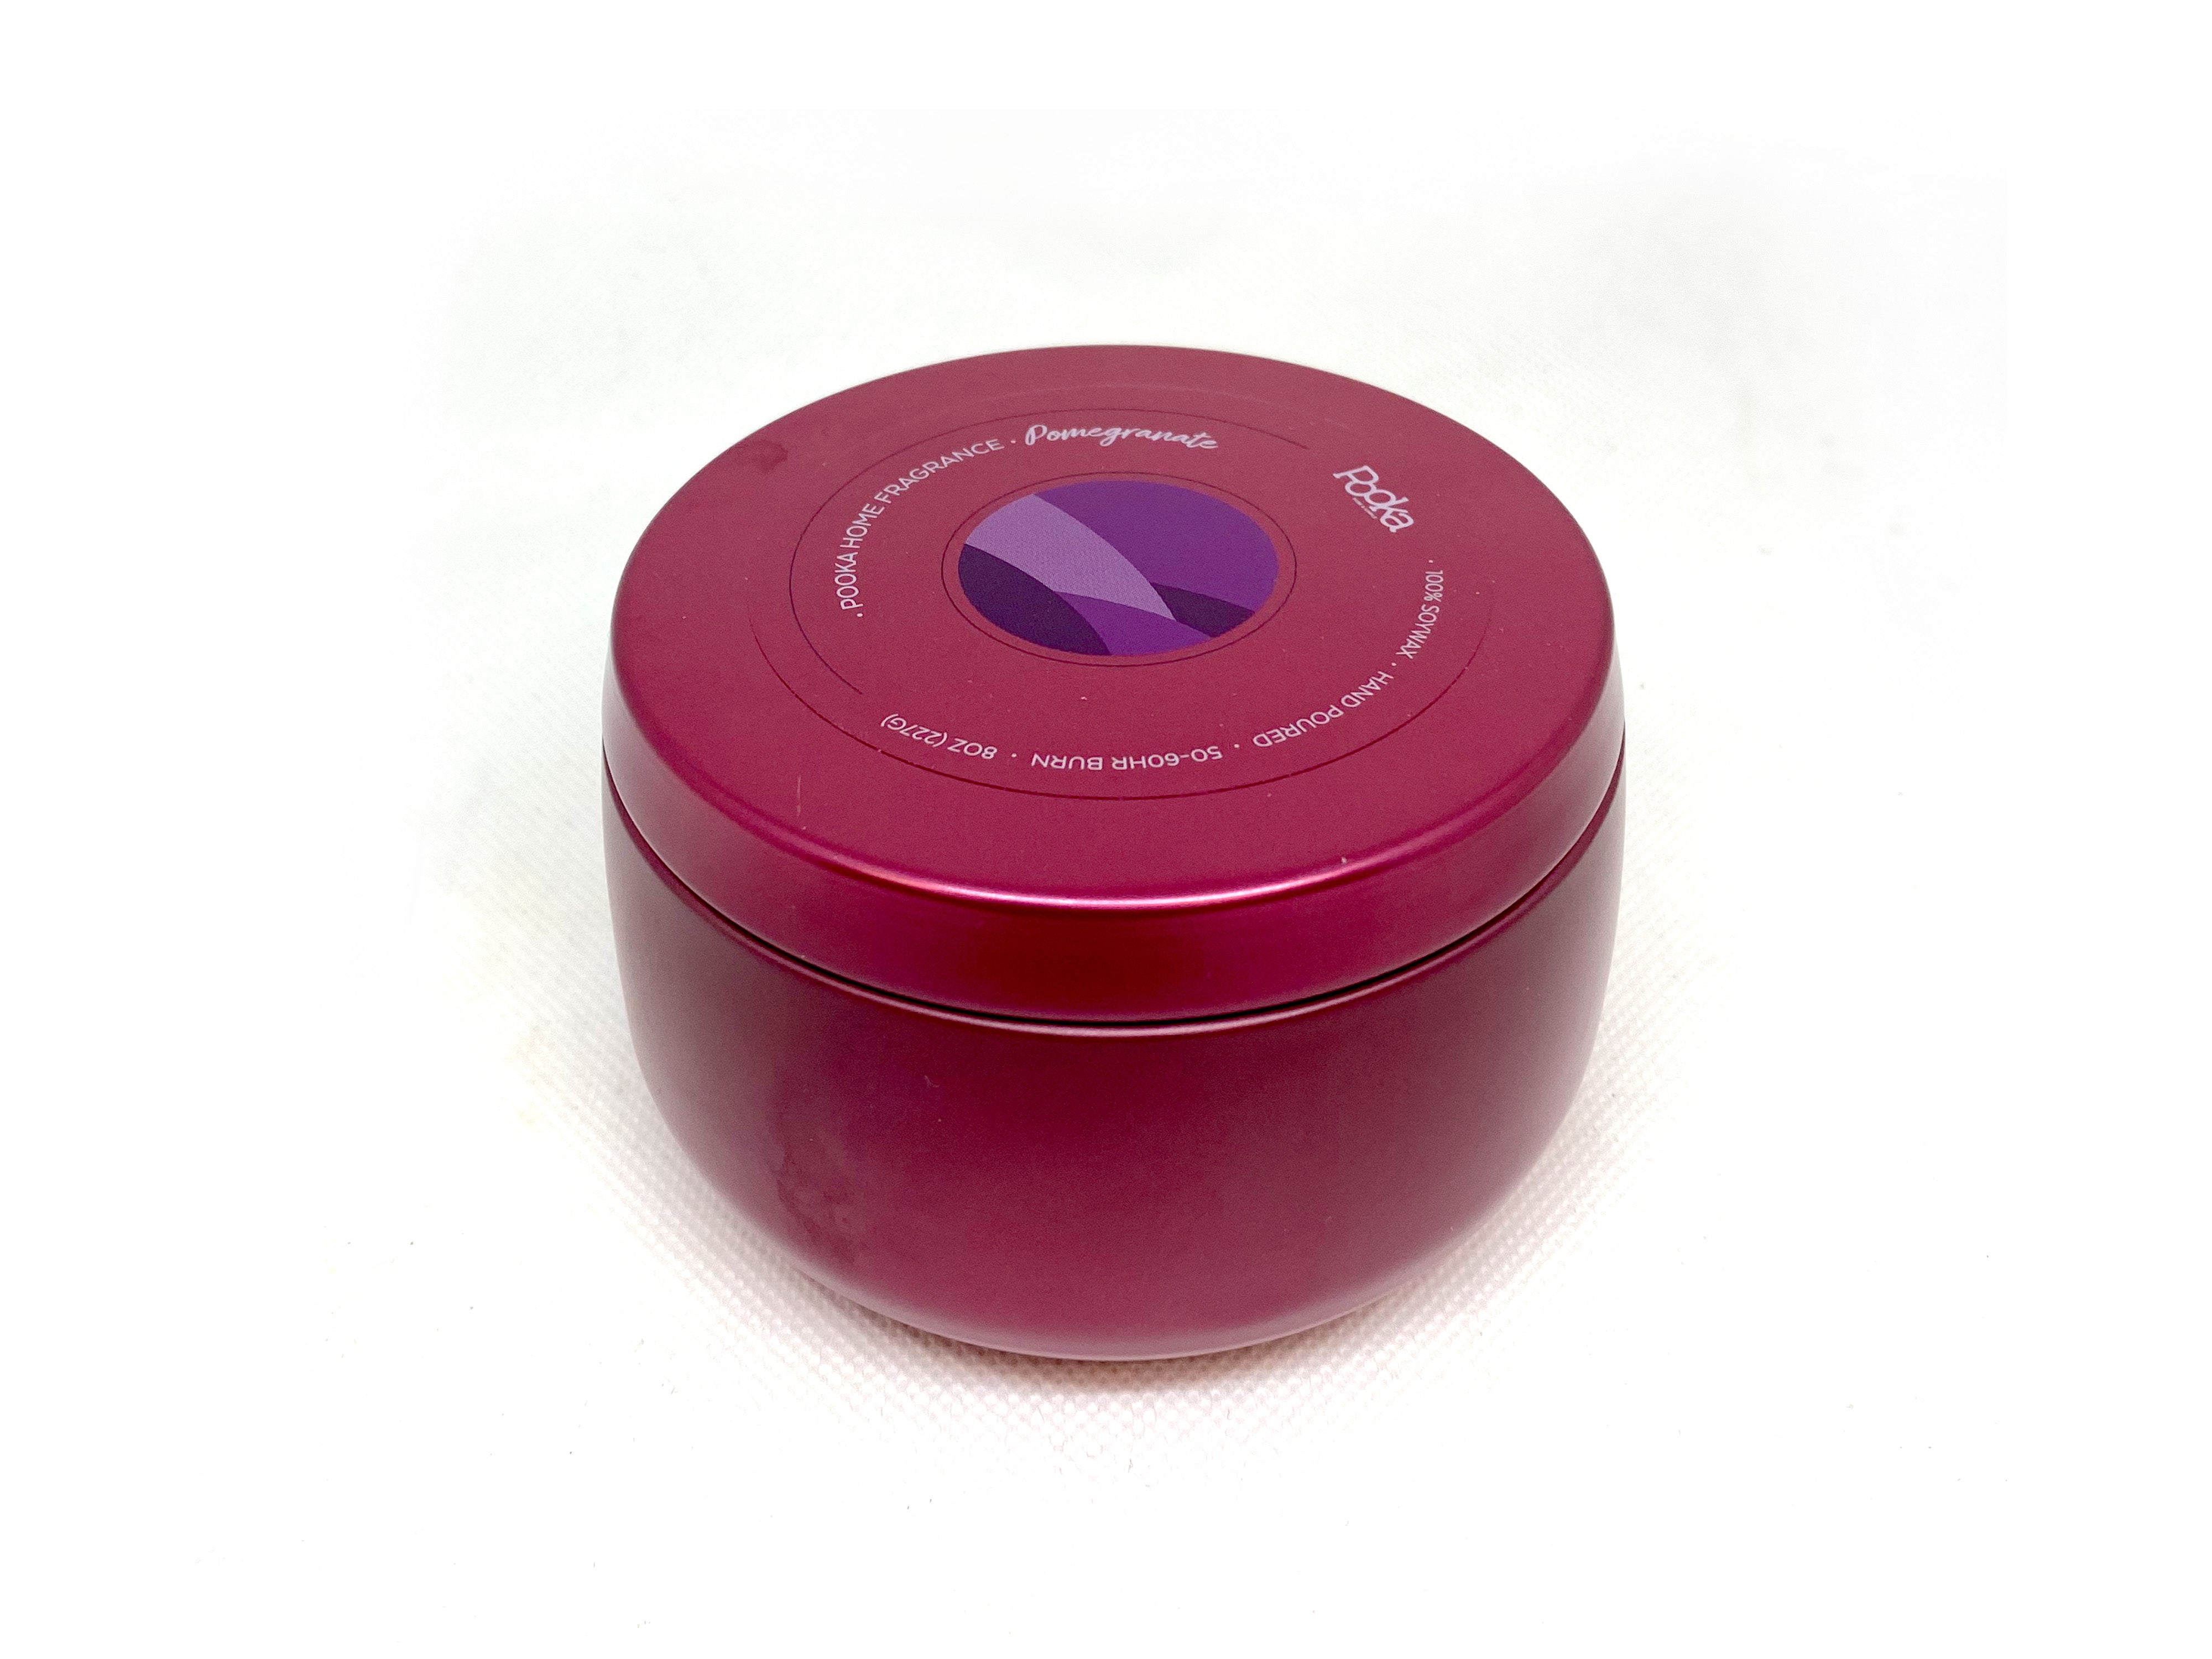 Pomegranate Soy Candle - Pooka Pure and Simple